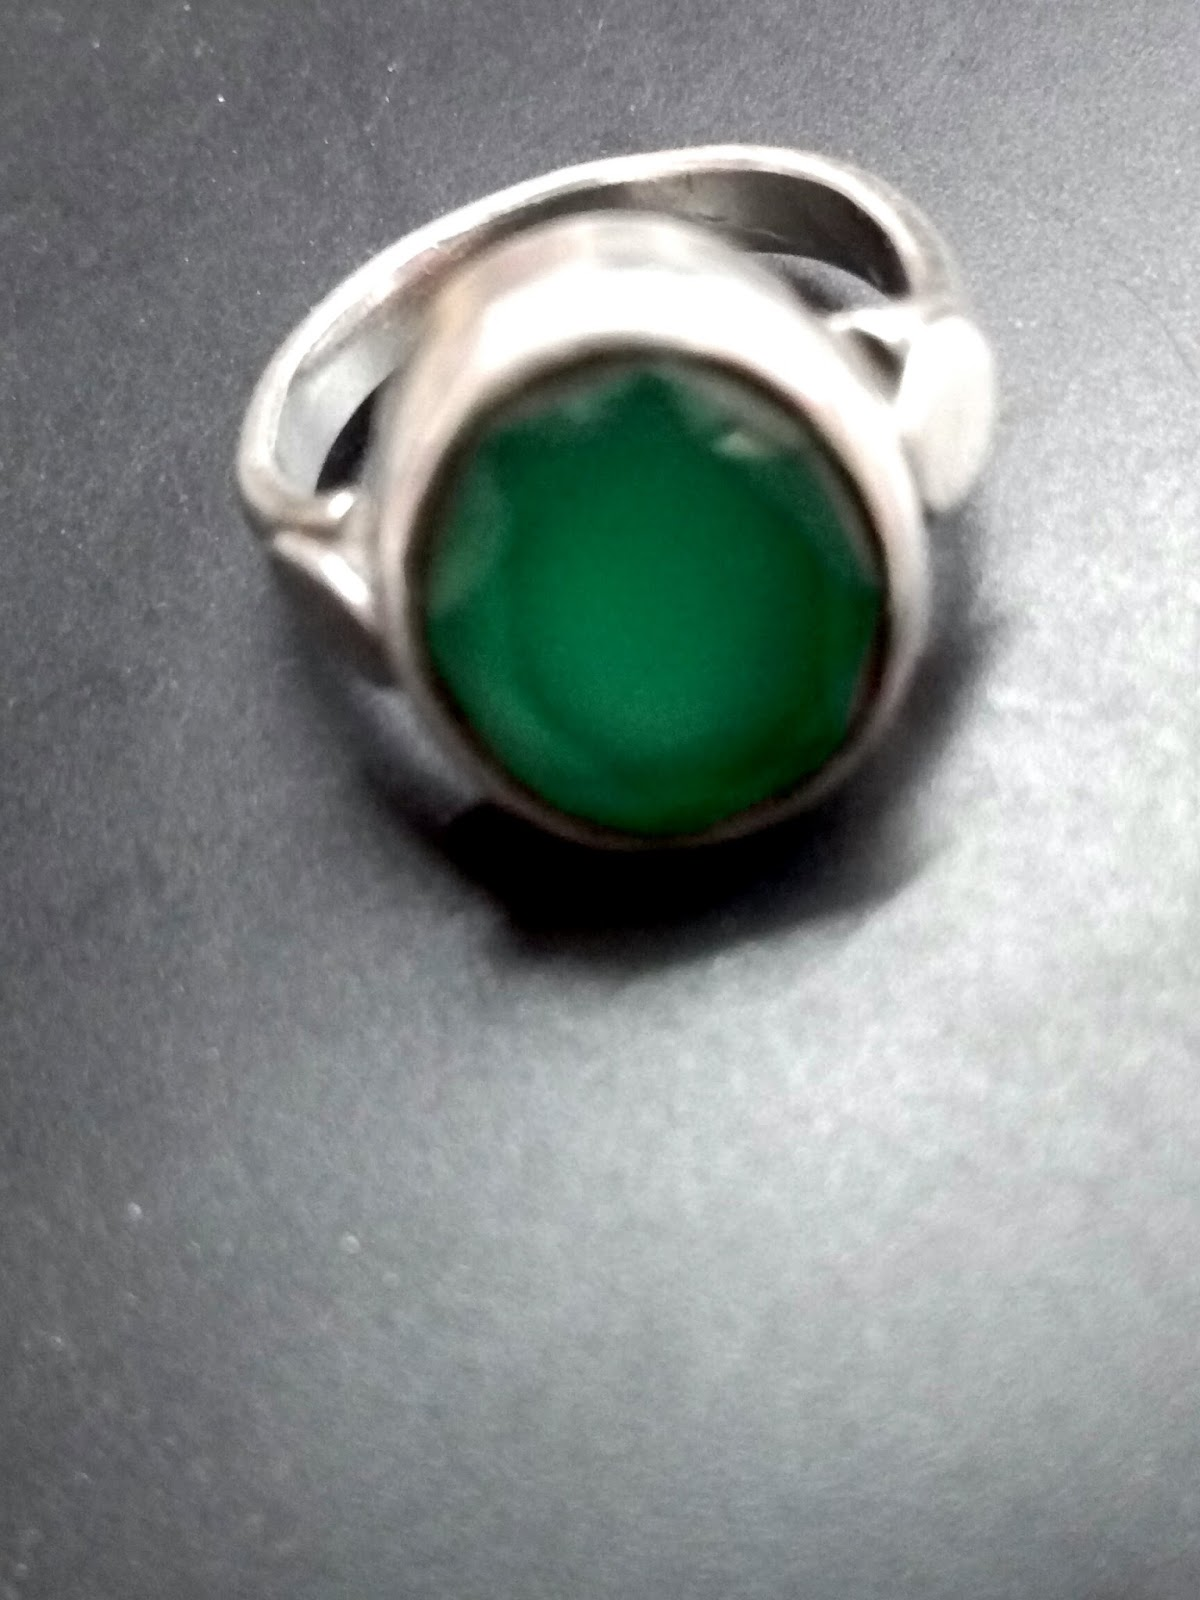 Obsessed Over Stones: Types of Greenery Gemstones for Pantone ...